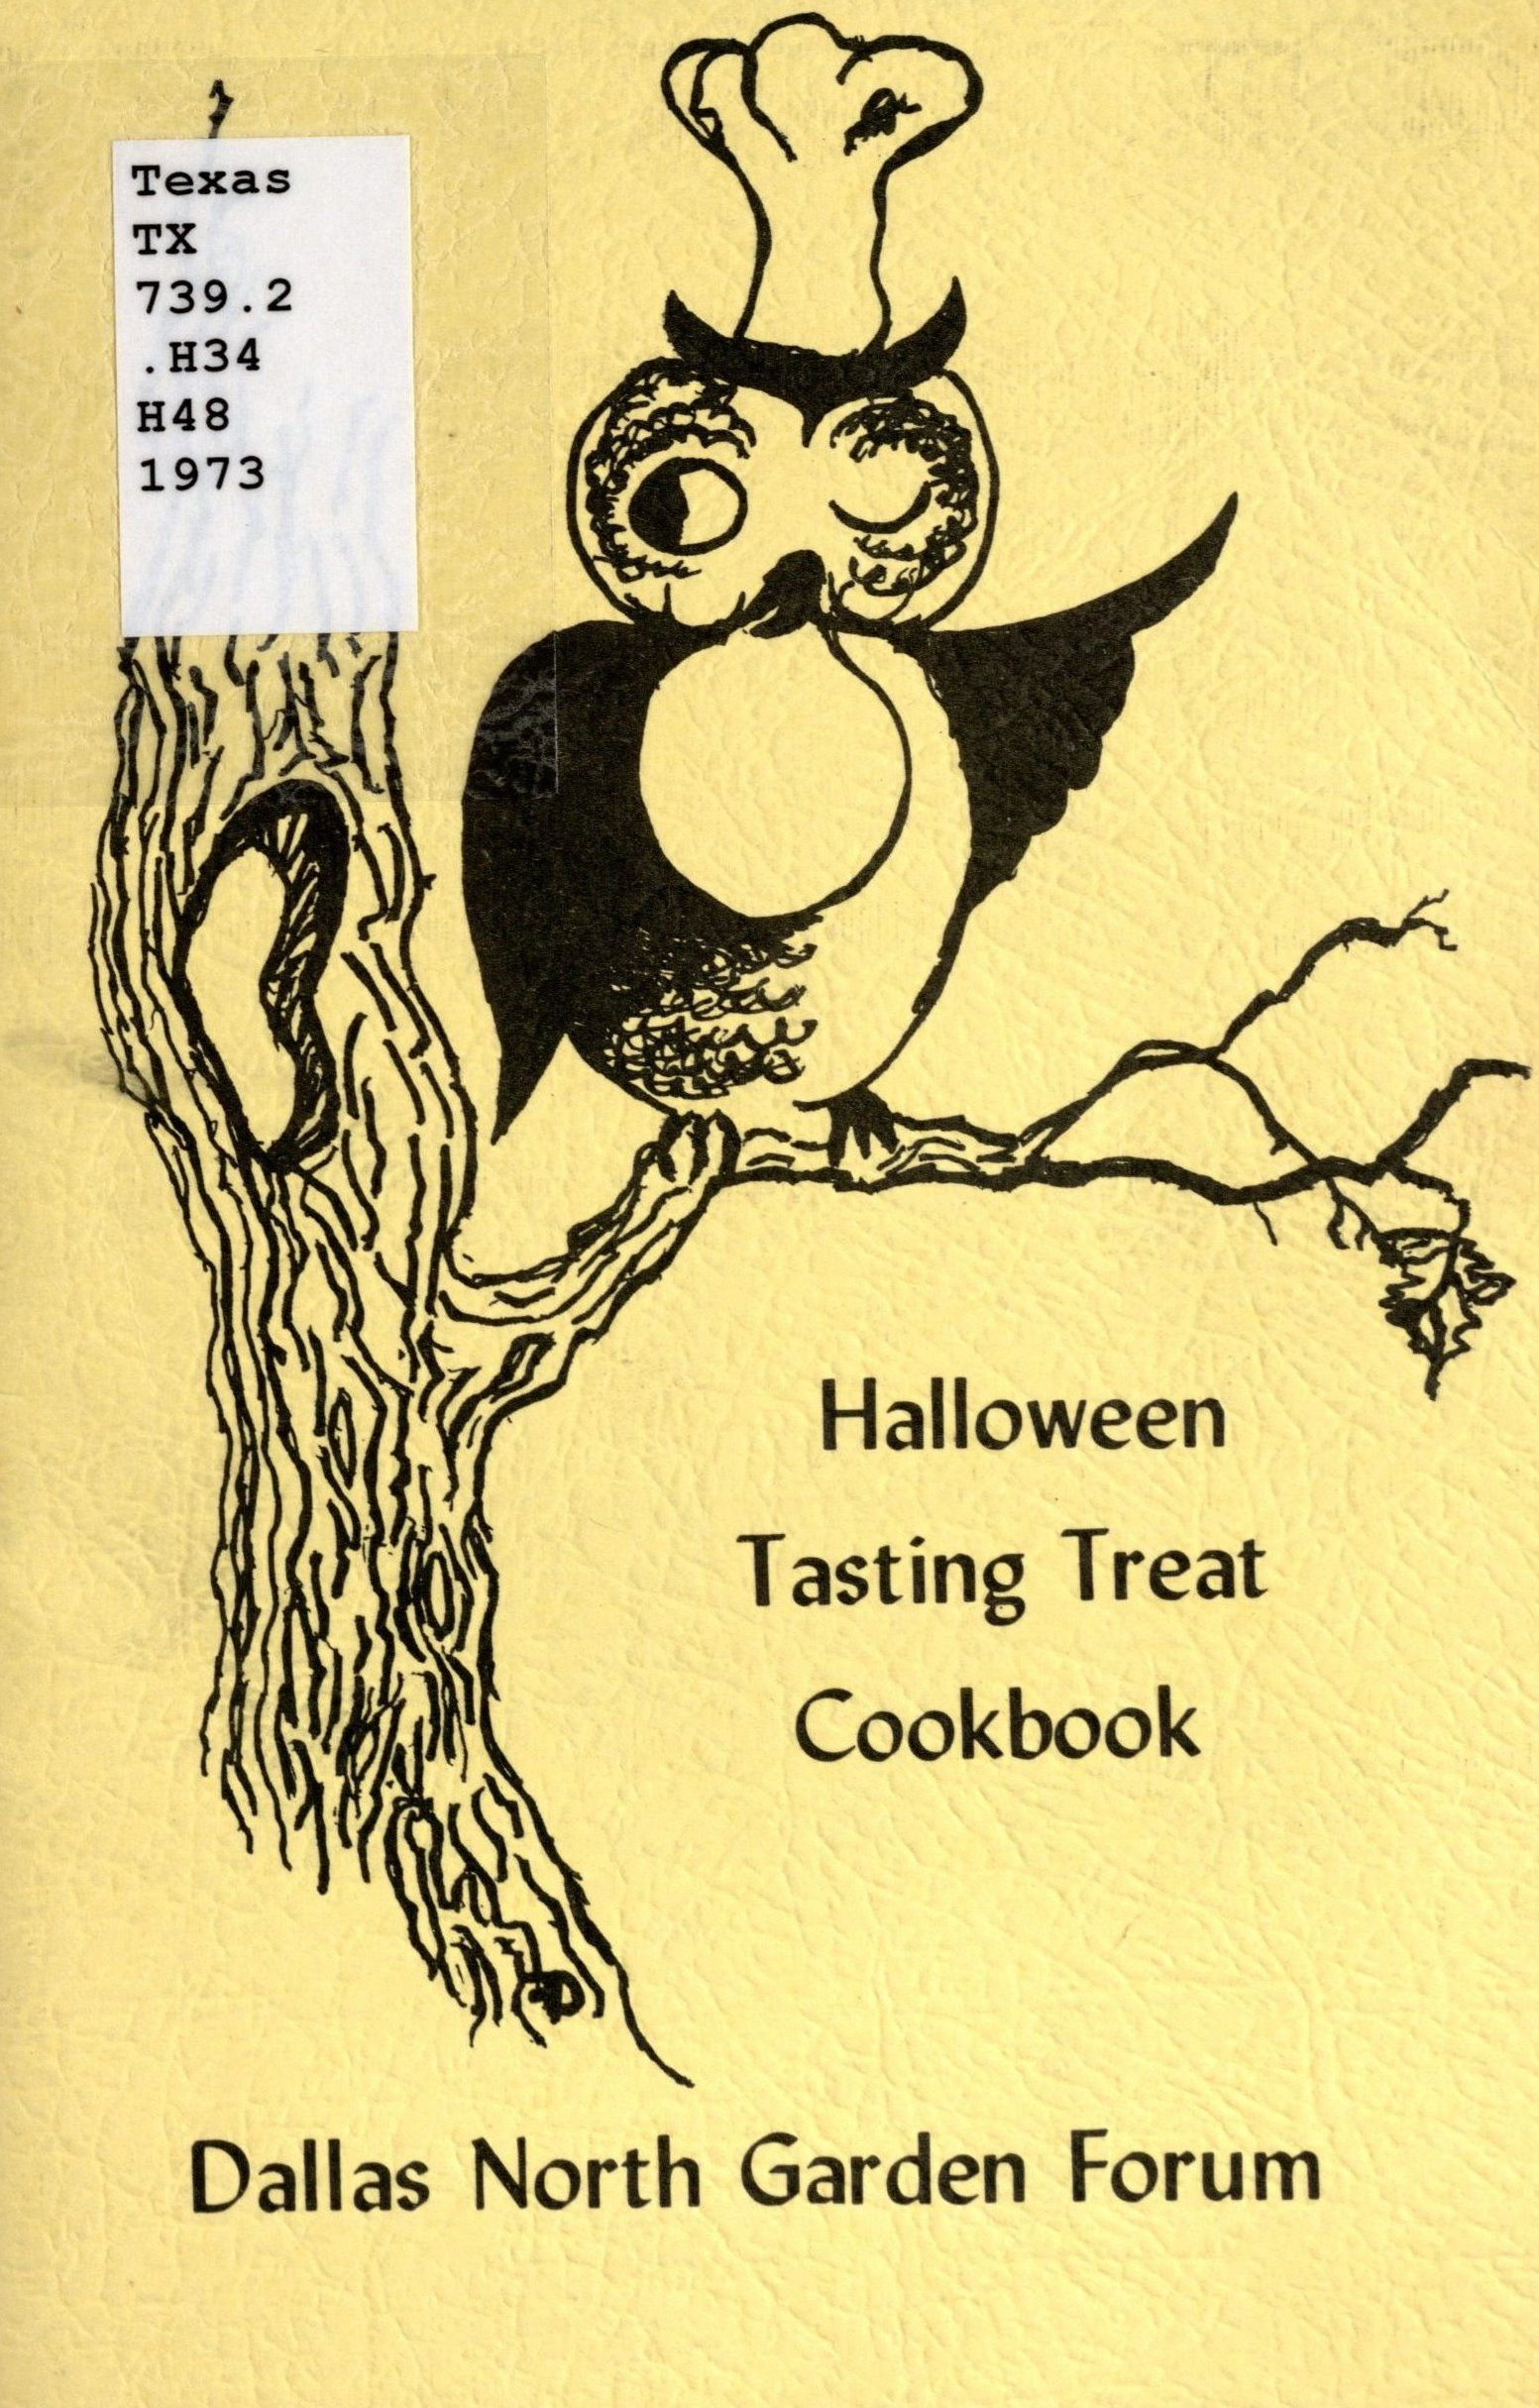 Dallas North Garden Forum. Halloween Tasting Treat Luncheon Cook Book. [Dallas, TX]: 1973. Print.